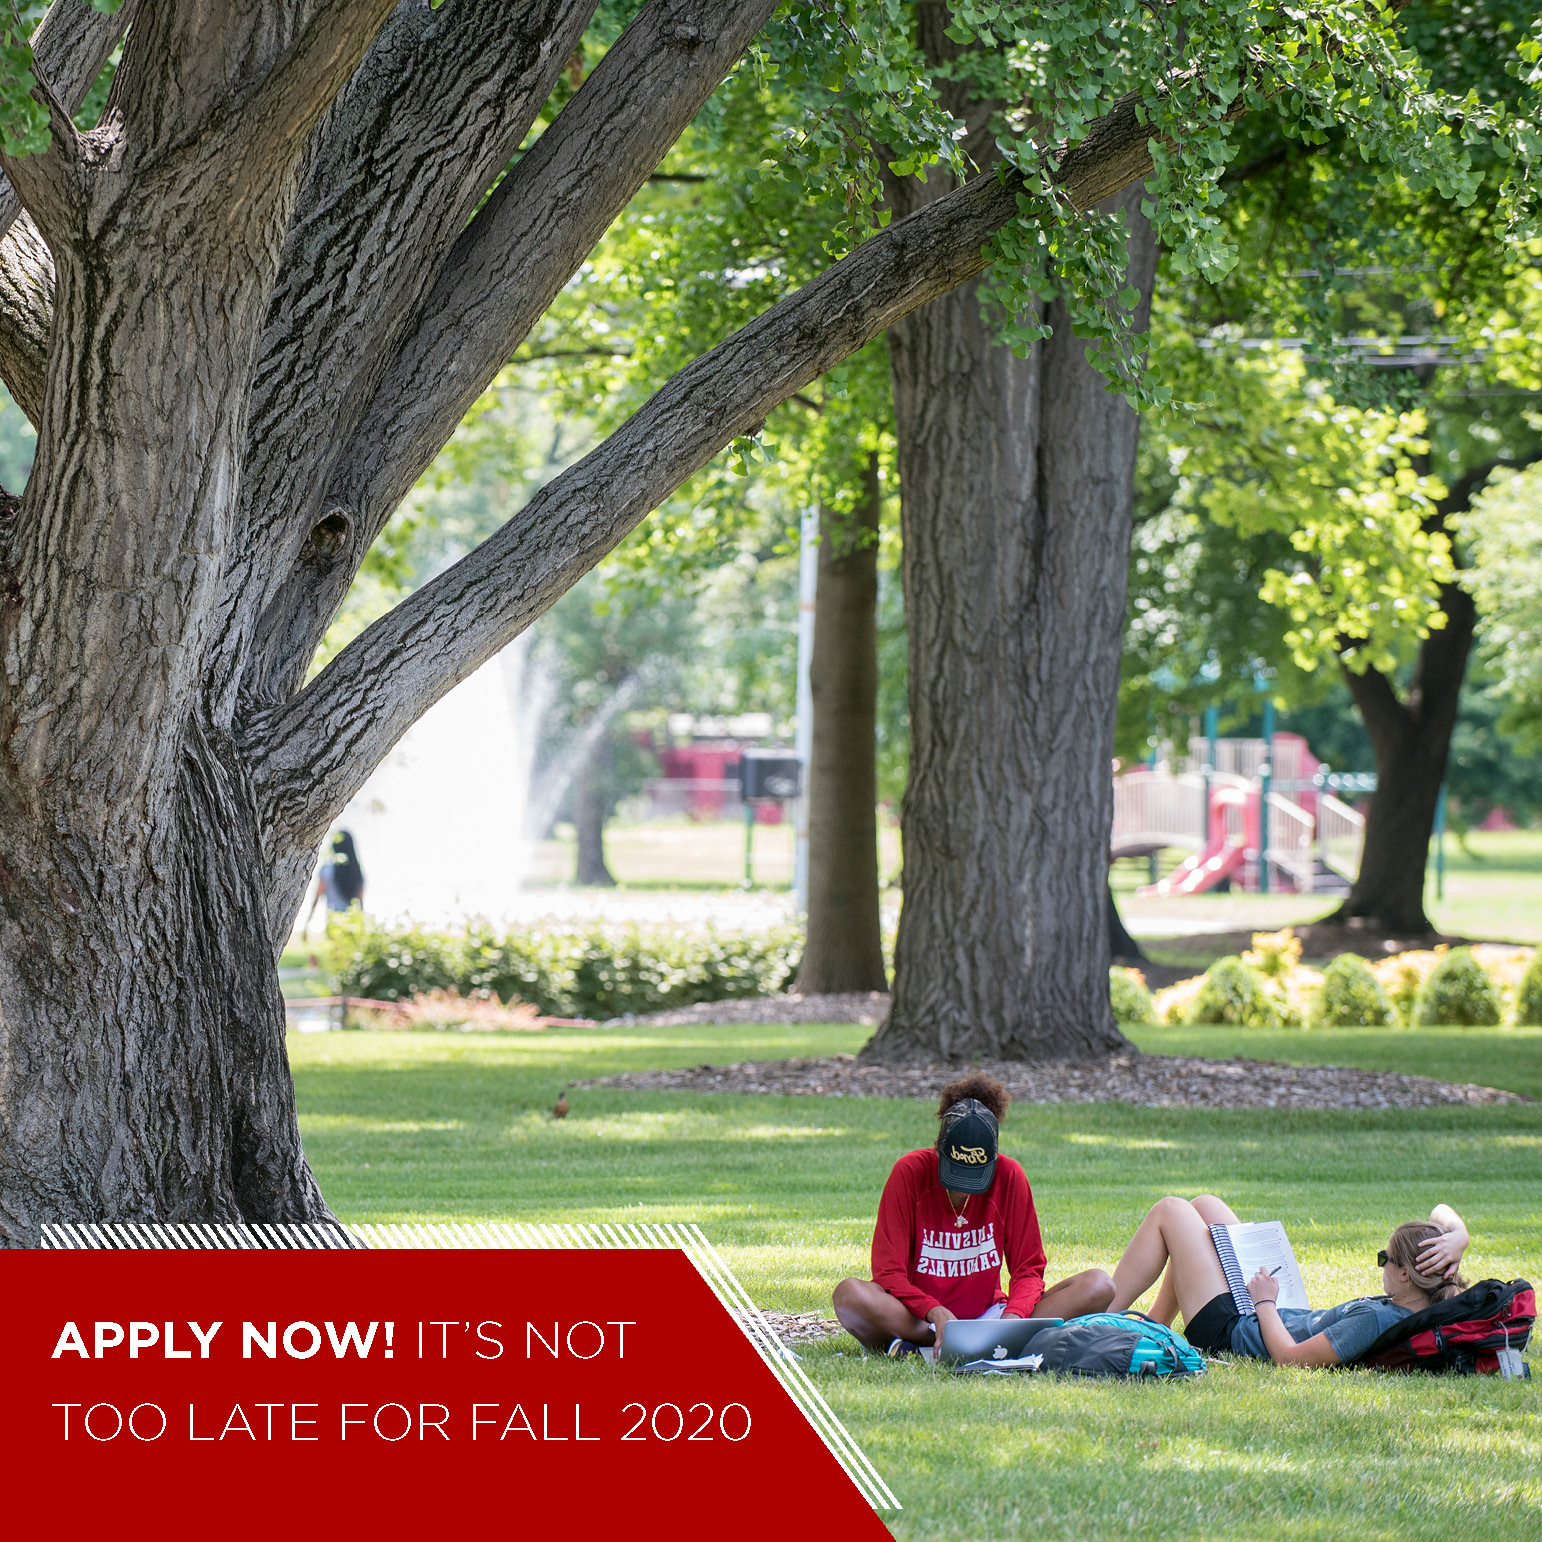 apply now - it's not too late for fall 2020